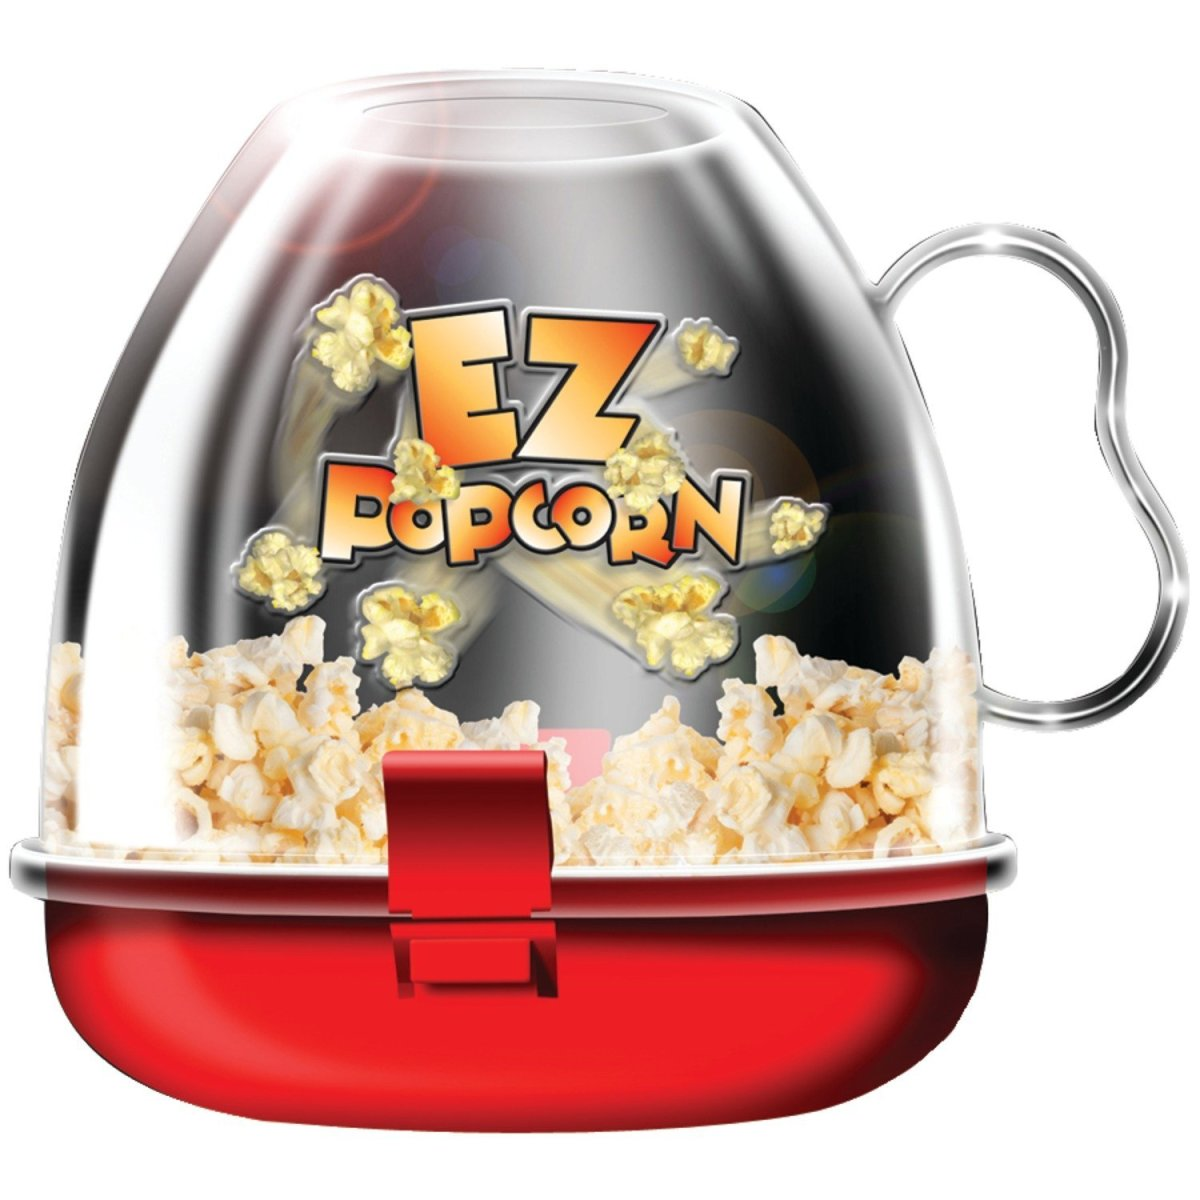 Healthier Snacking Made Easy! My Review of the EZ Popcorn maker